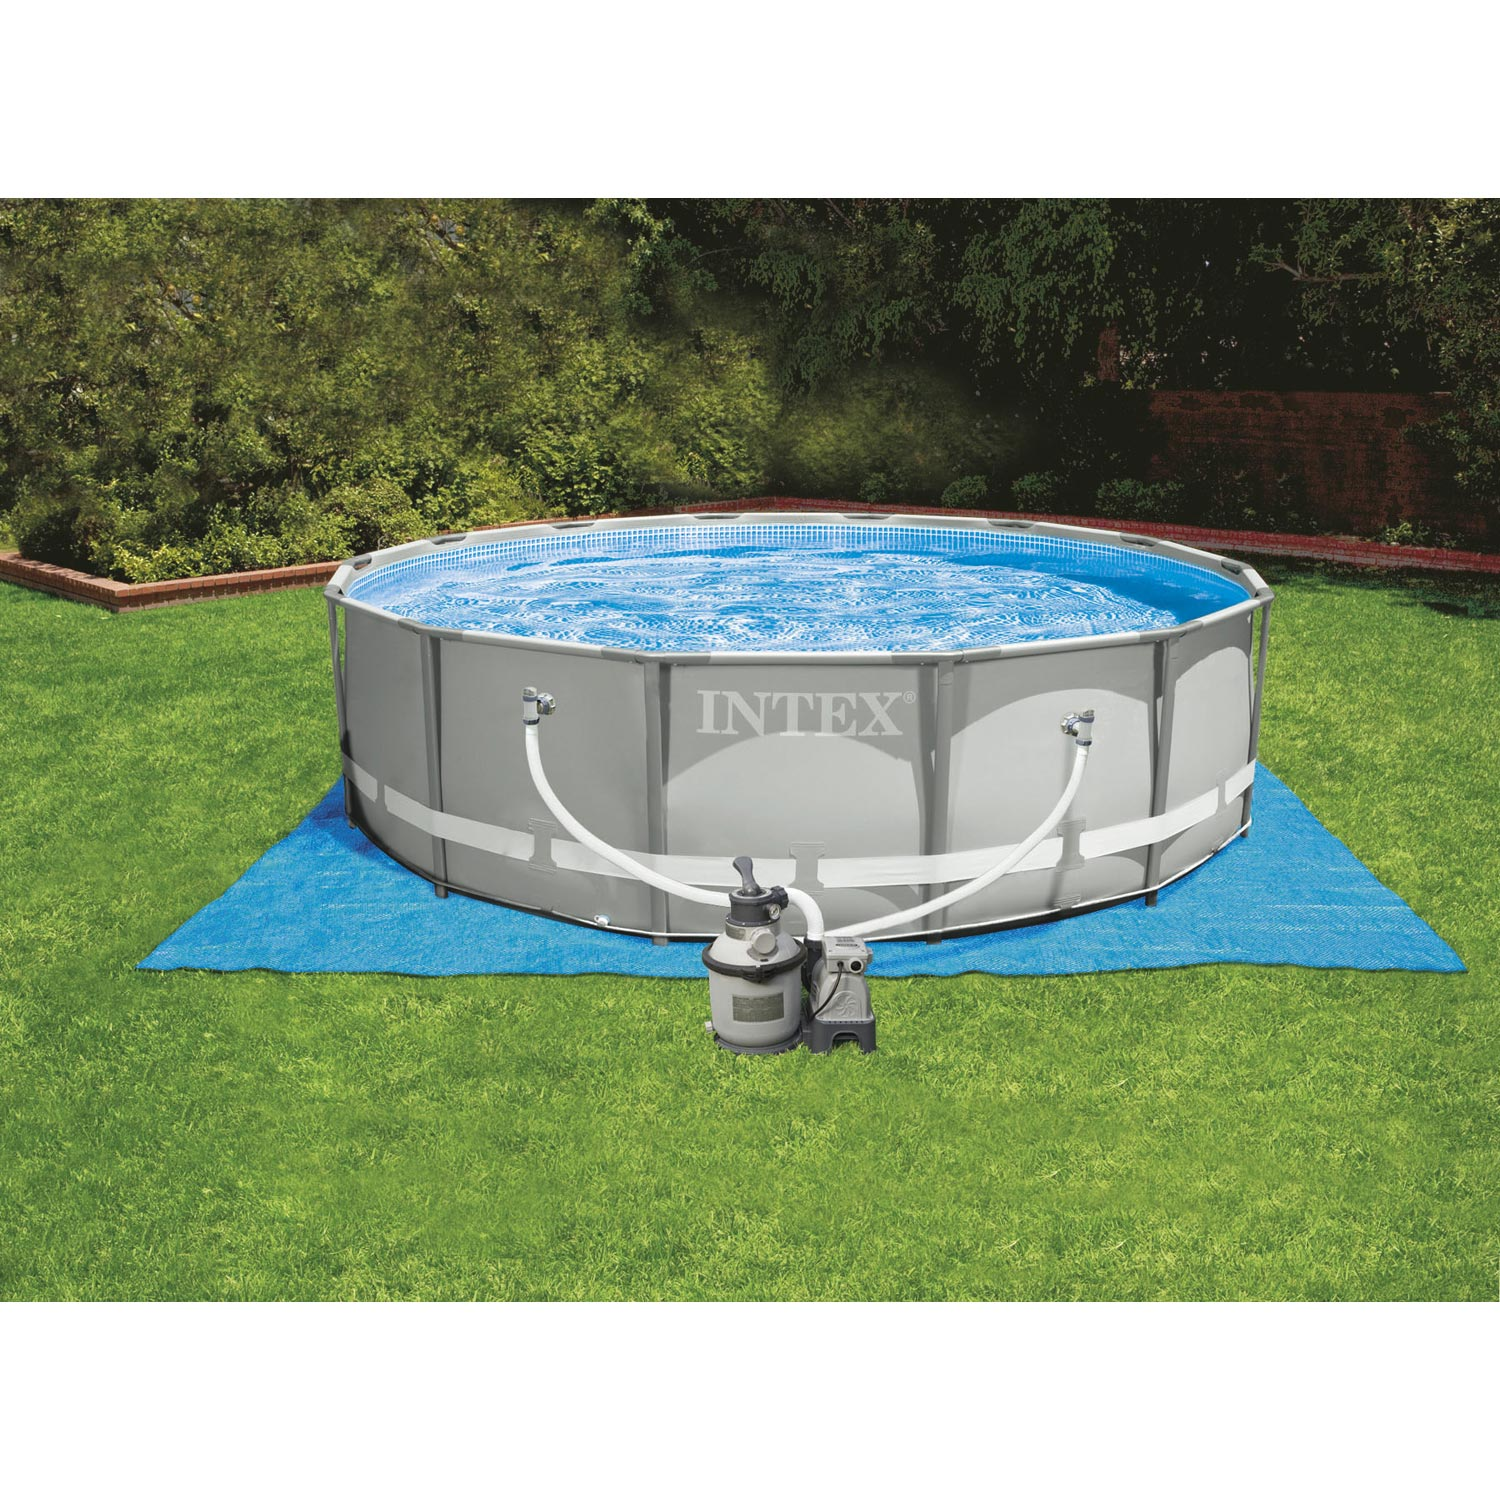 Piscine hors sol autoportante tubulaire ultraframe intex for Piscine hors sol plastique